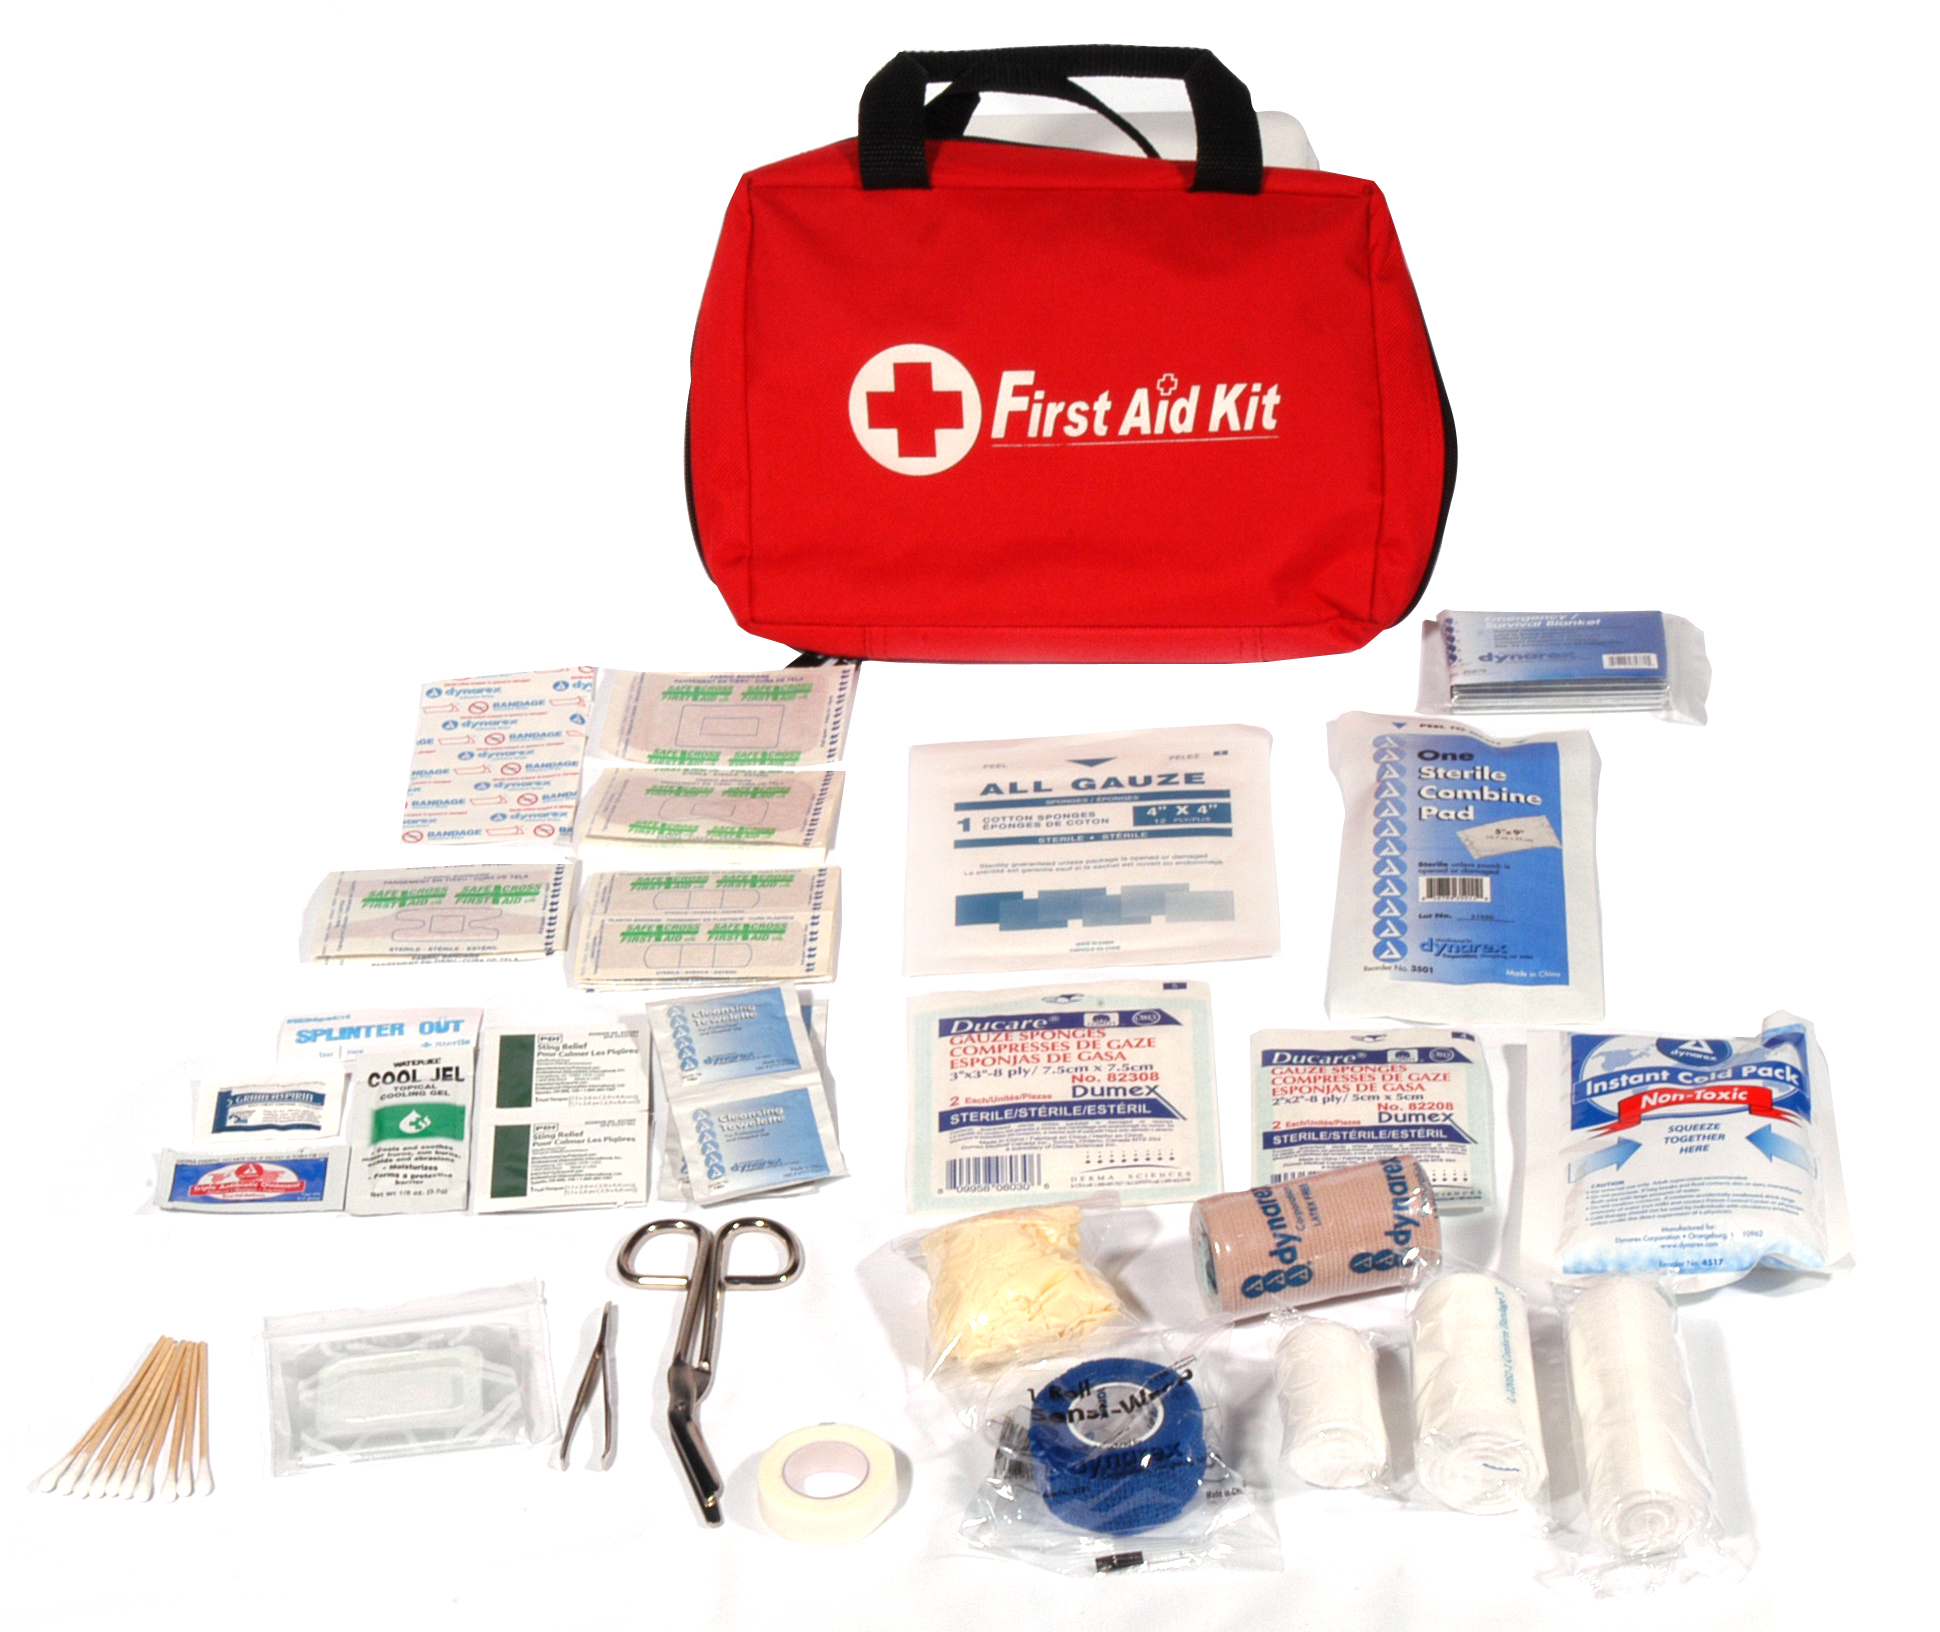 Emergency First-Aid Kit image